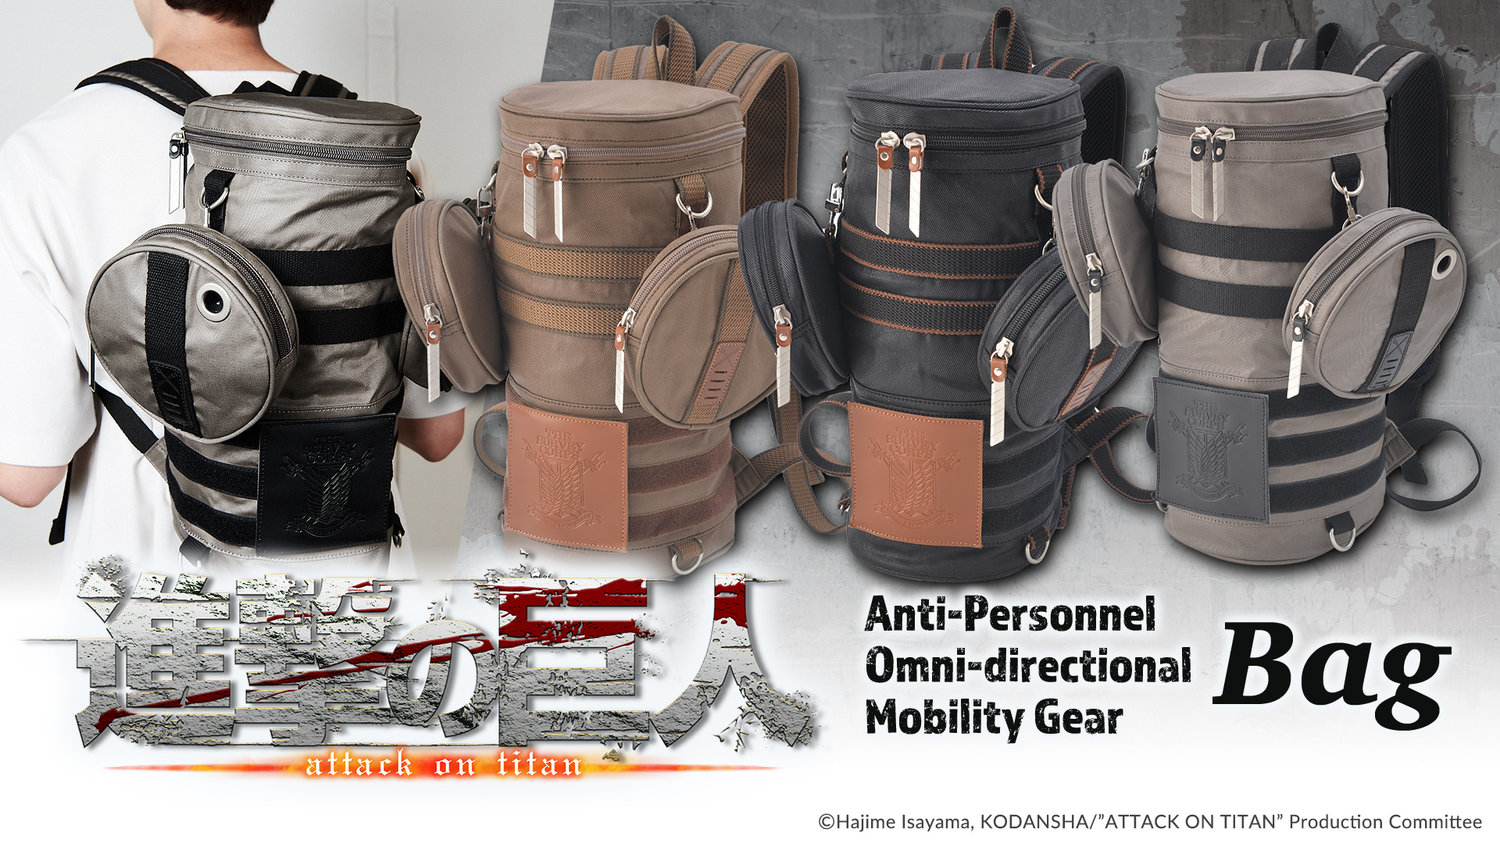 Anti-Personnel Omni-directional Mobility Gear Bag